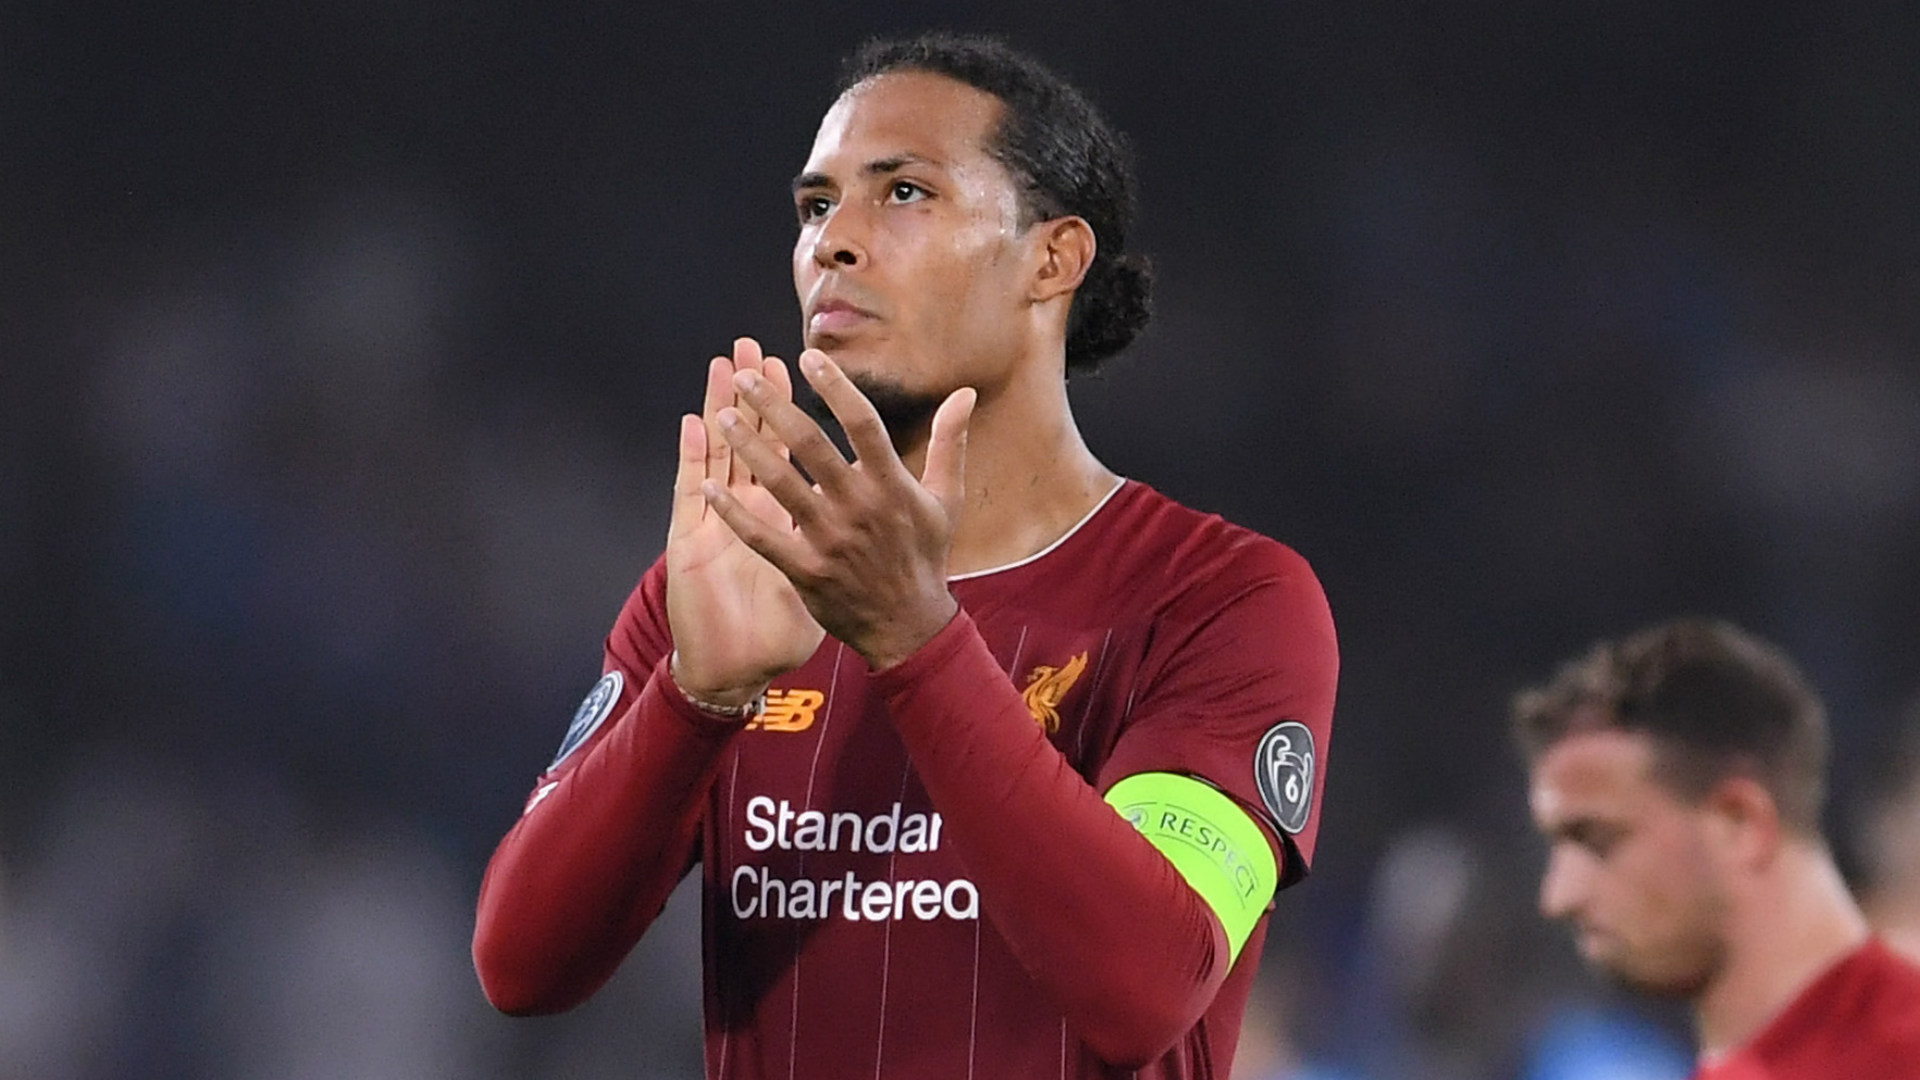 Van Dijk rubbishes contract speculation at Liverpool with 'nothing going on'